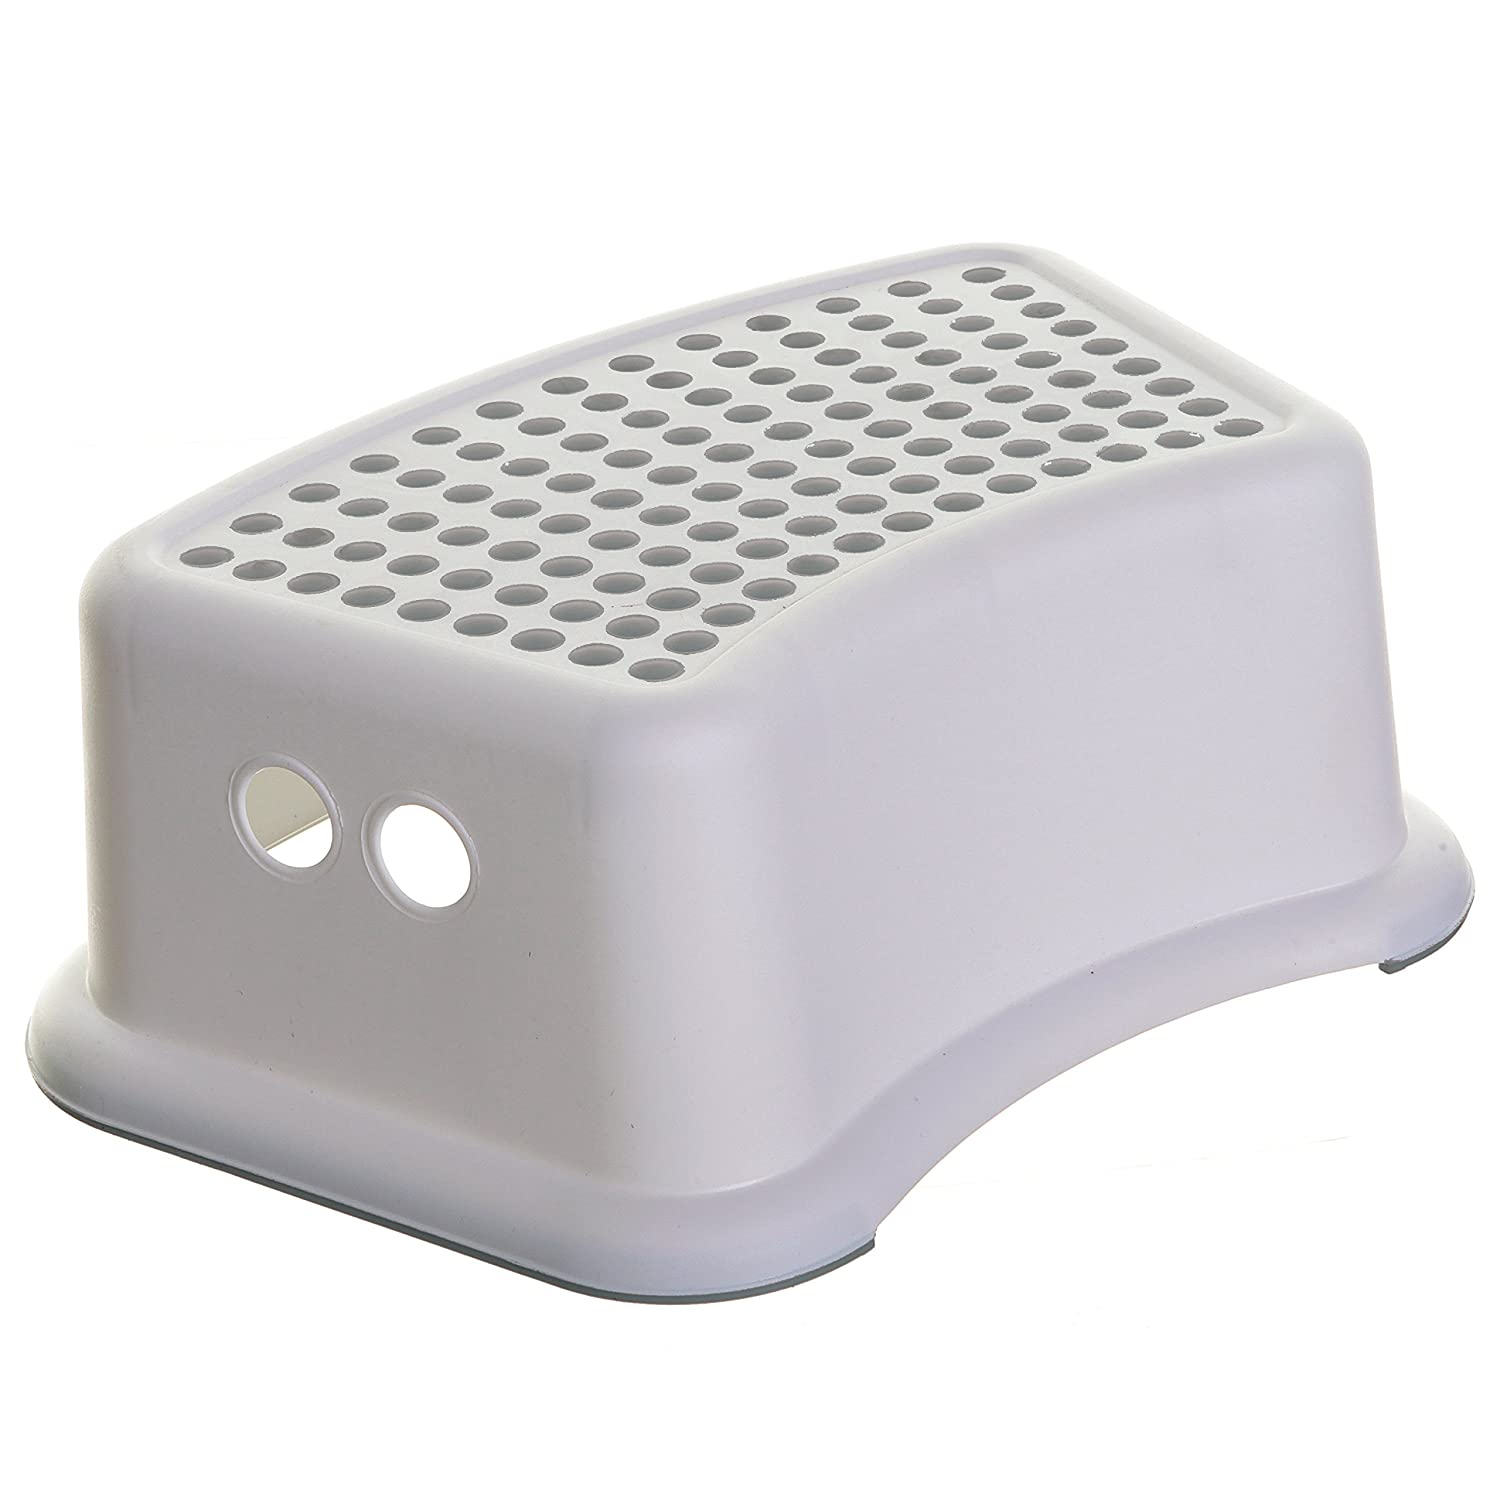 Dreambaby Step Stool, Grey Dots L673